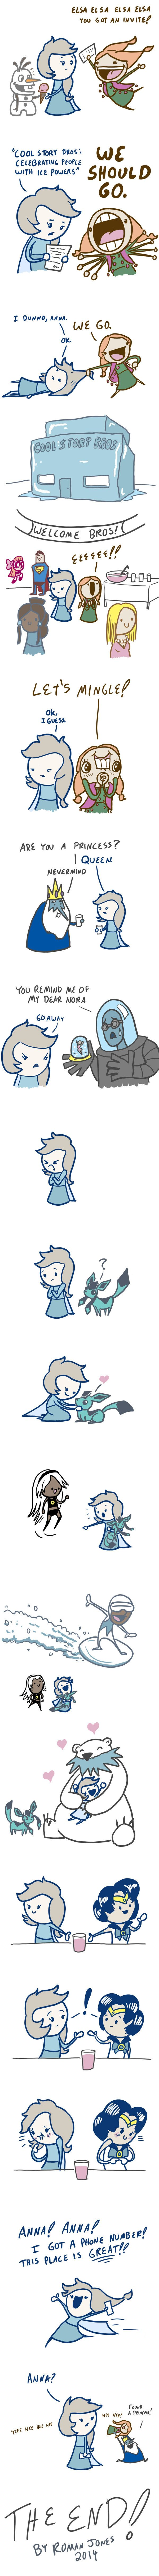 Frozen Comics - Ice Party - this is really cute